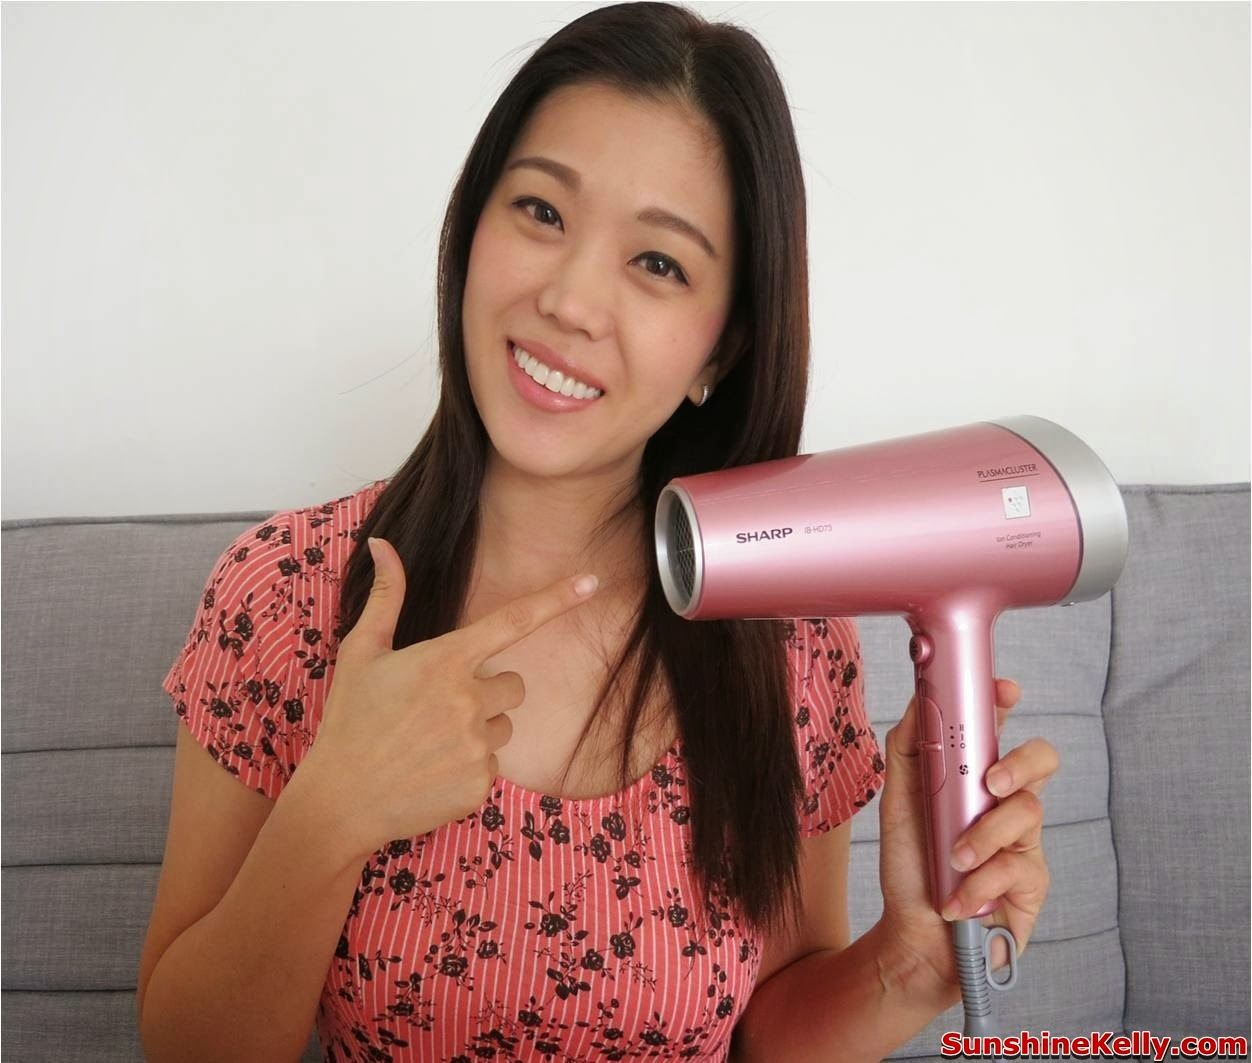 SHARP IB-HD73S Ion Conditioning Hair Dryer, sharp, hair dryer, plasmacluster, ion, styling, hair care, anti static hair dryer